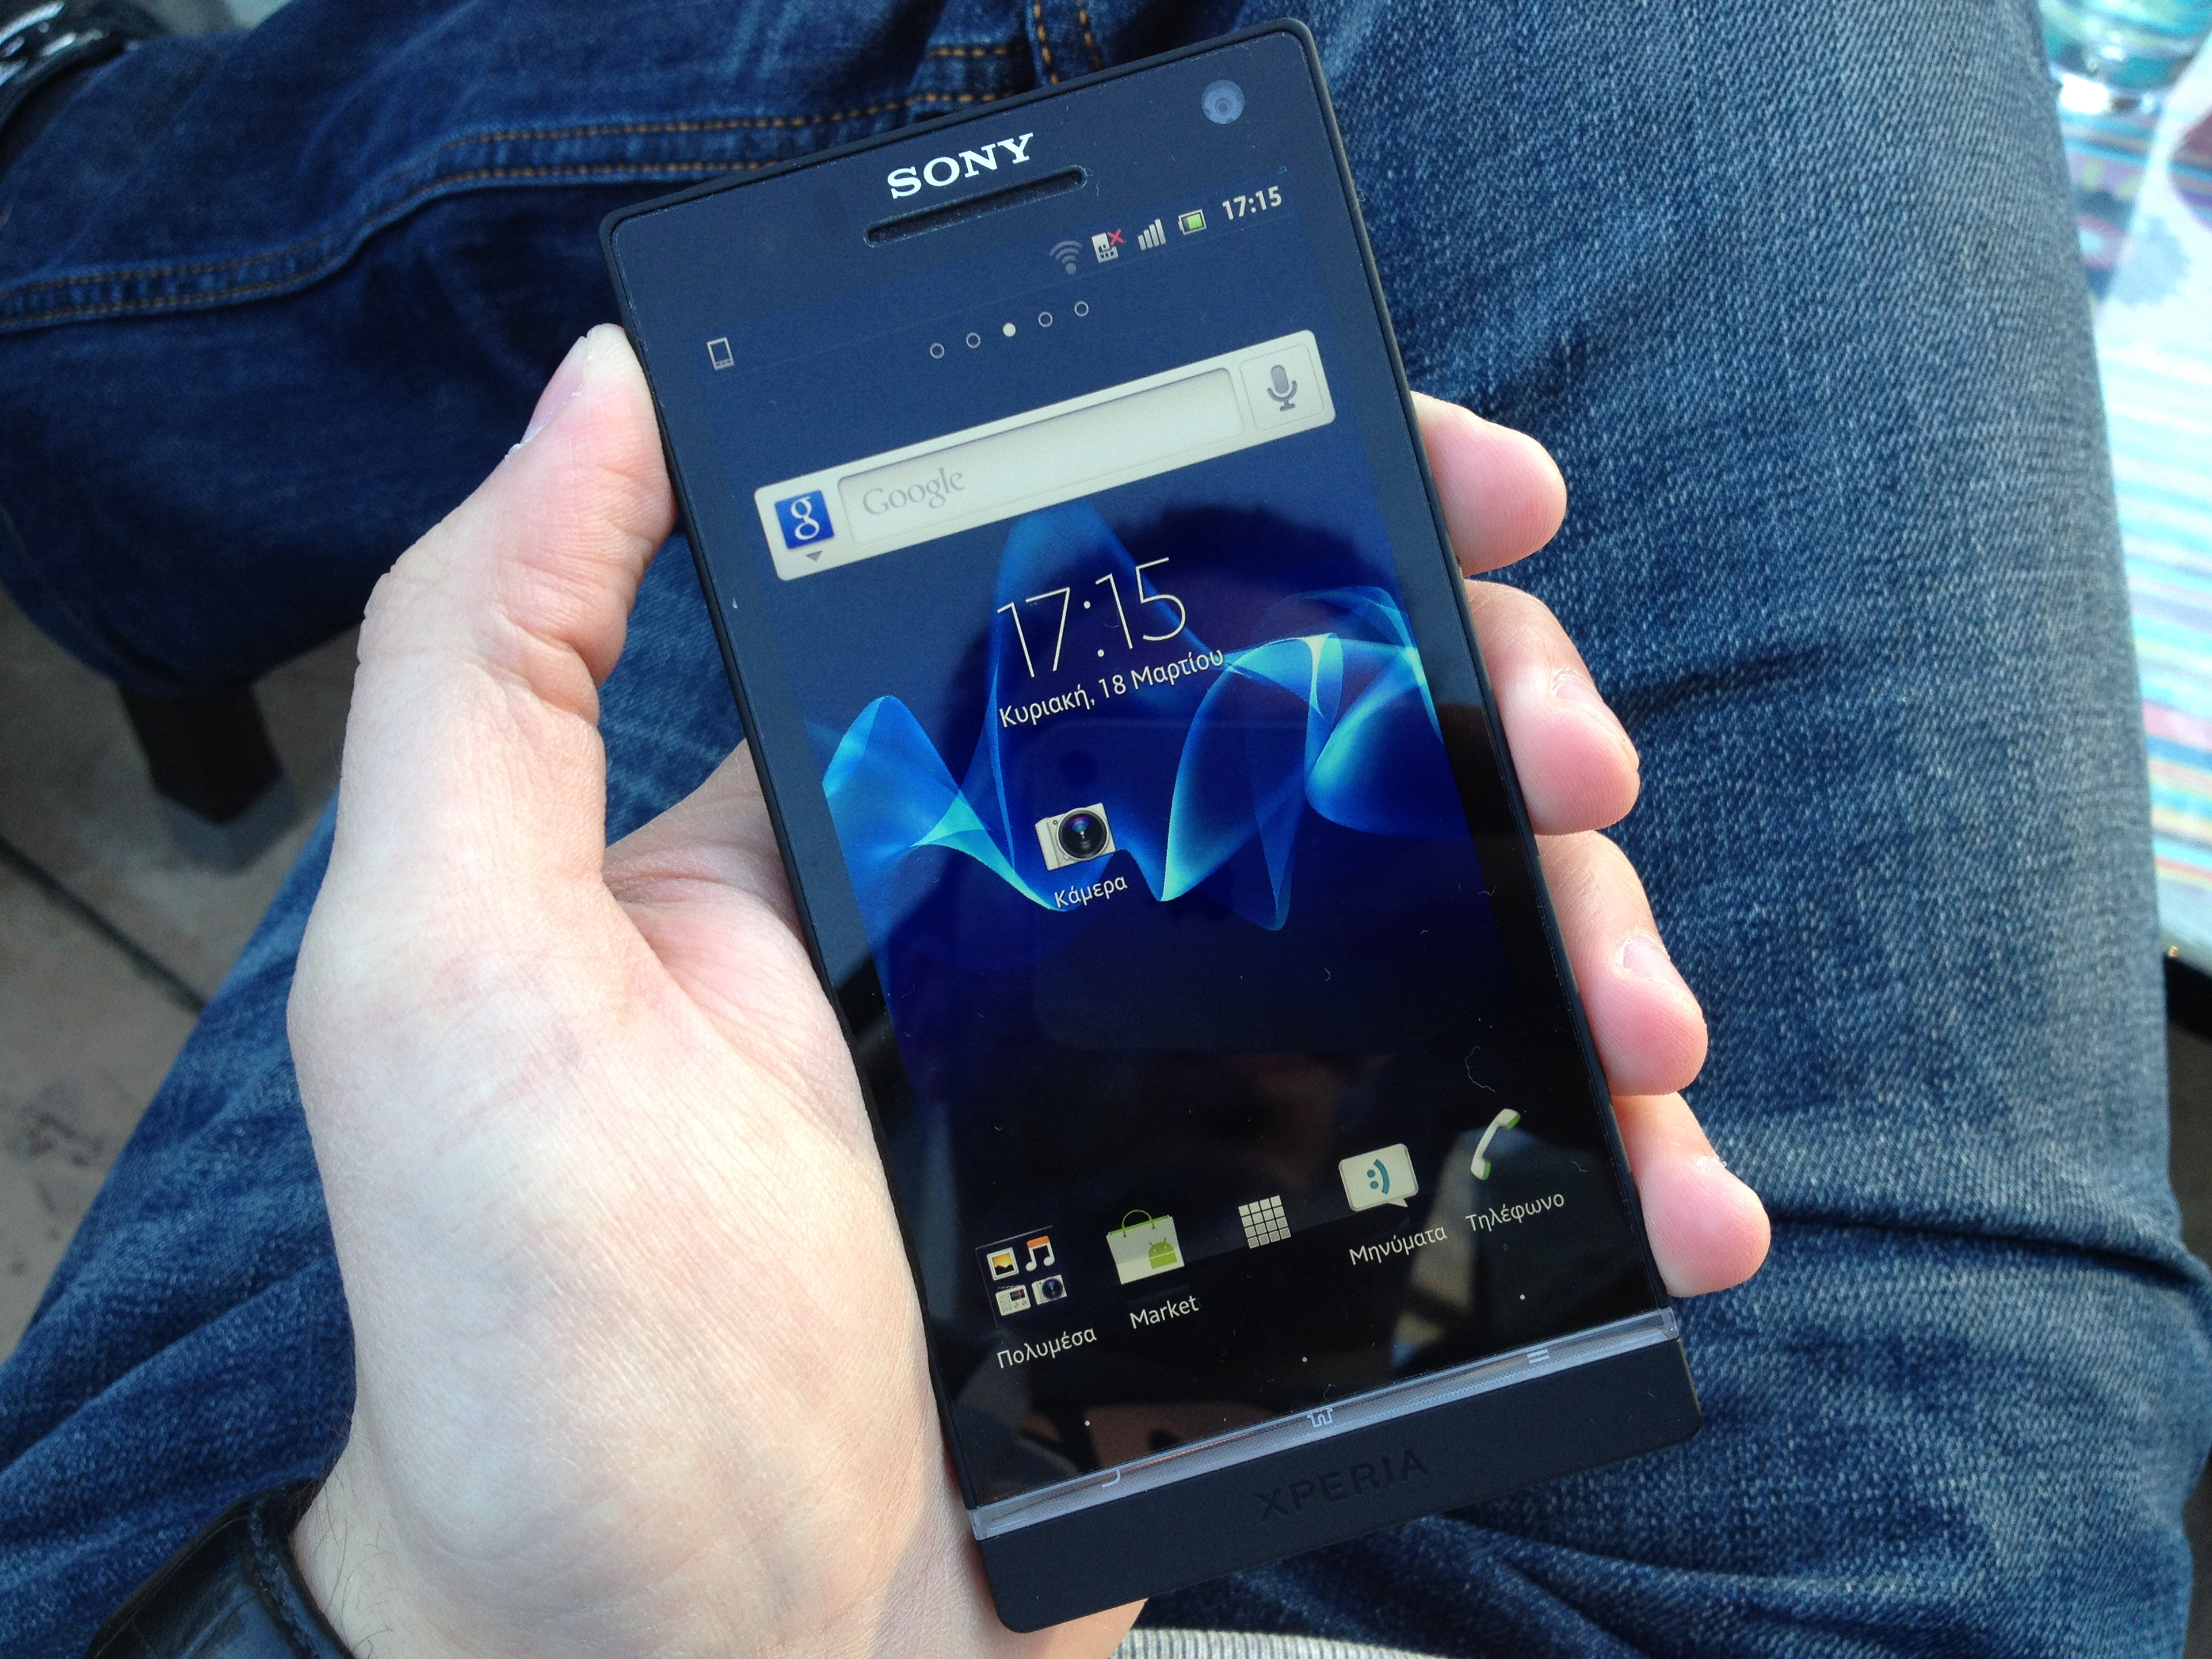 Xperia S LT26i Gets Android 412 62B196 with Major